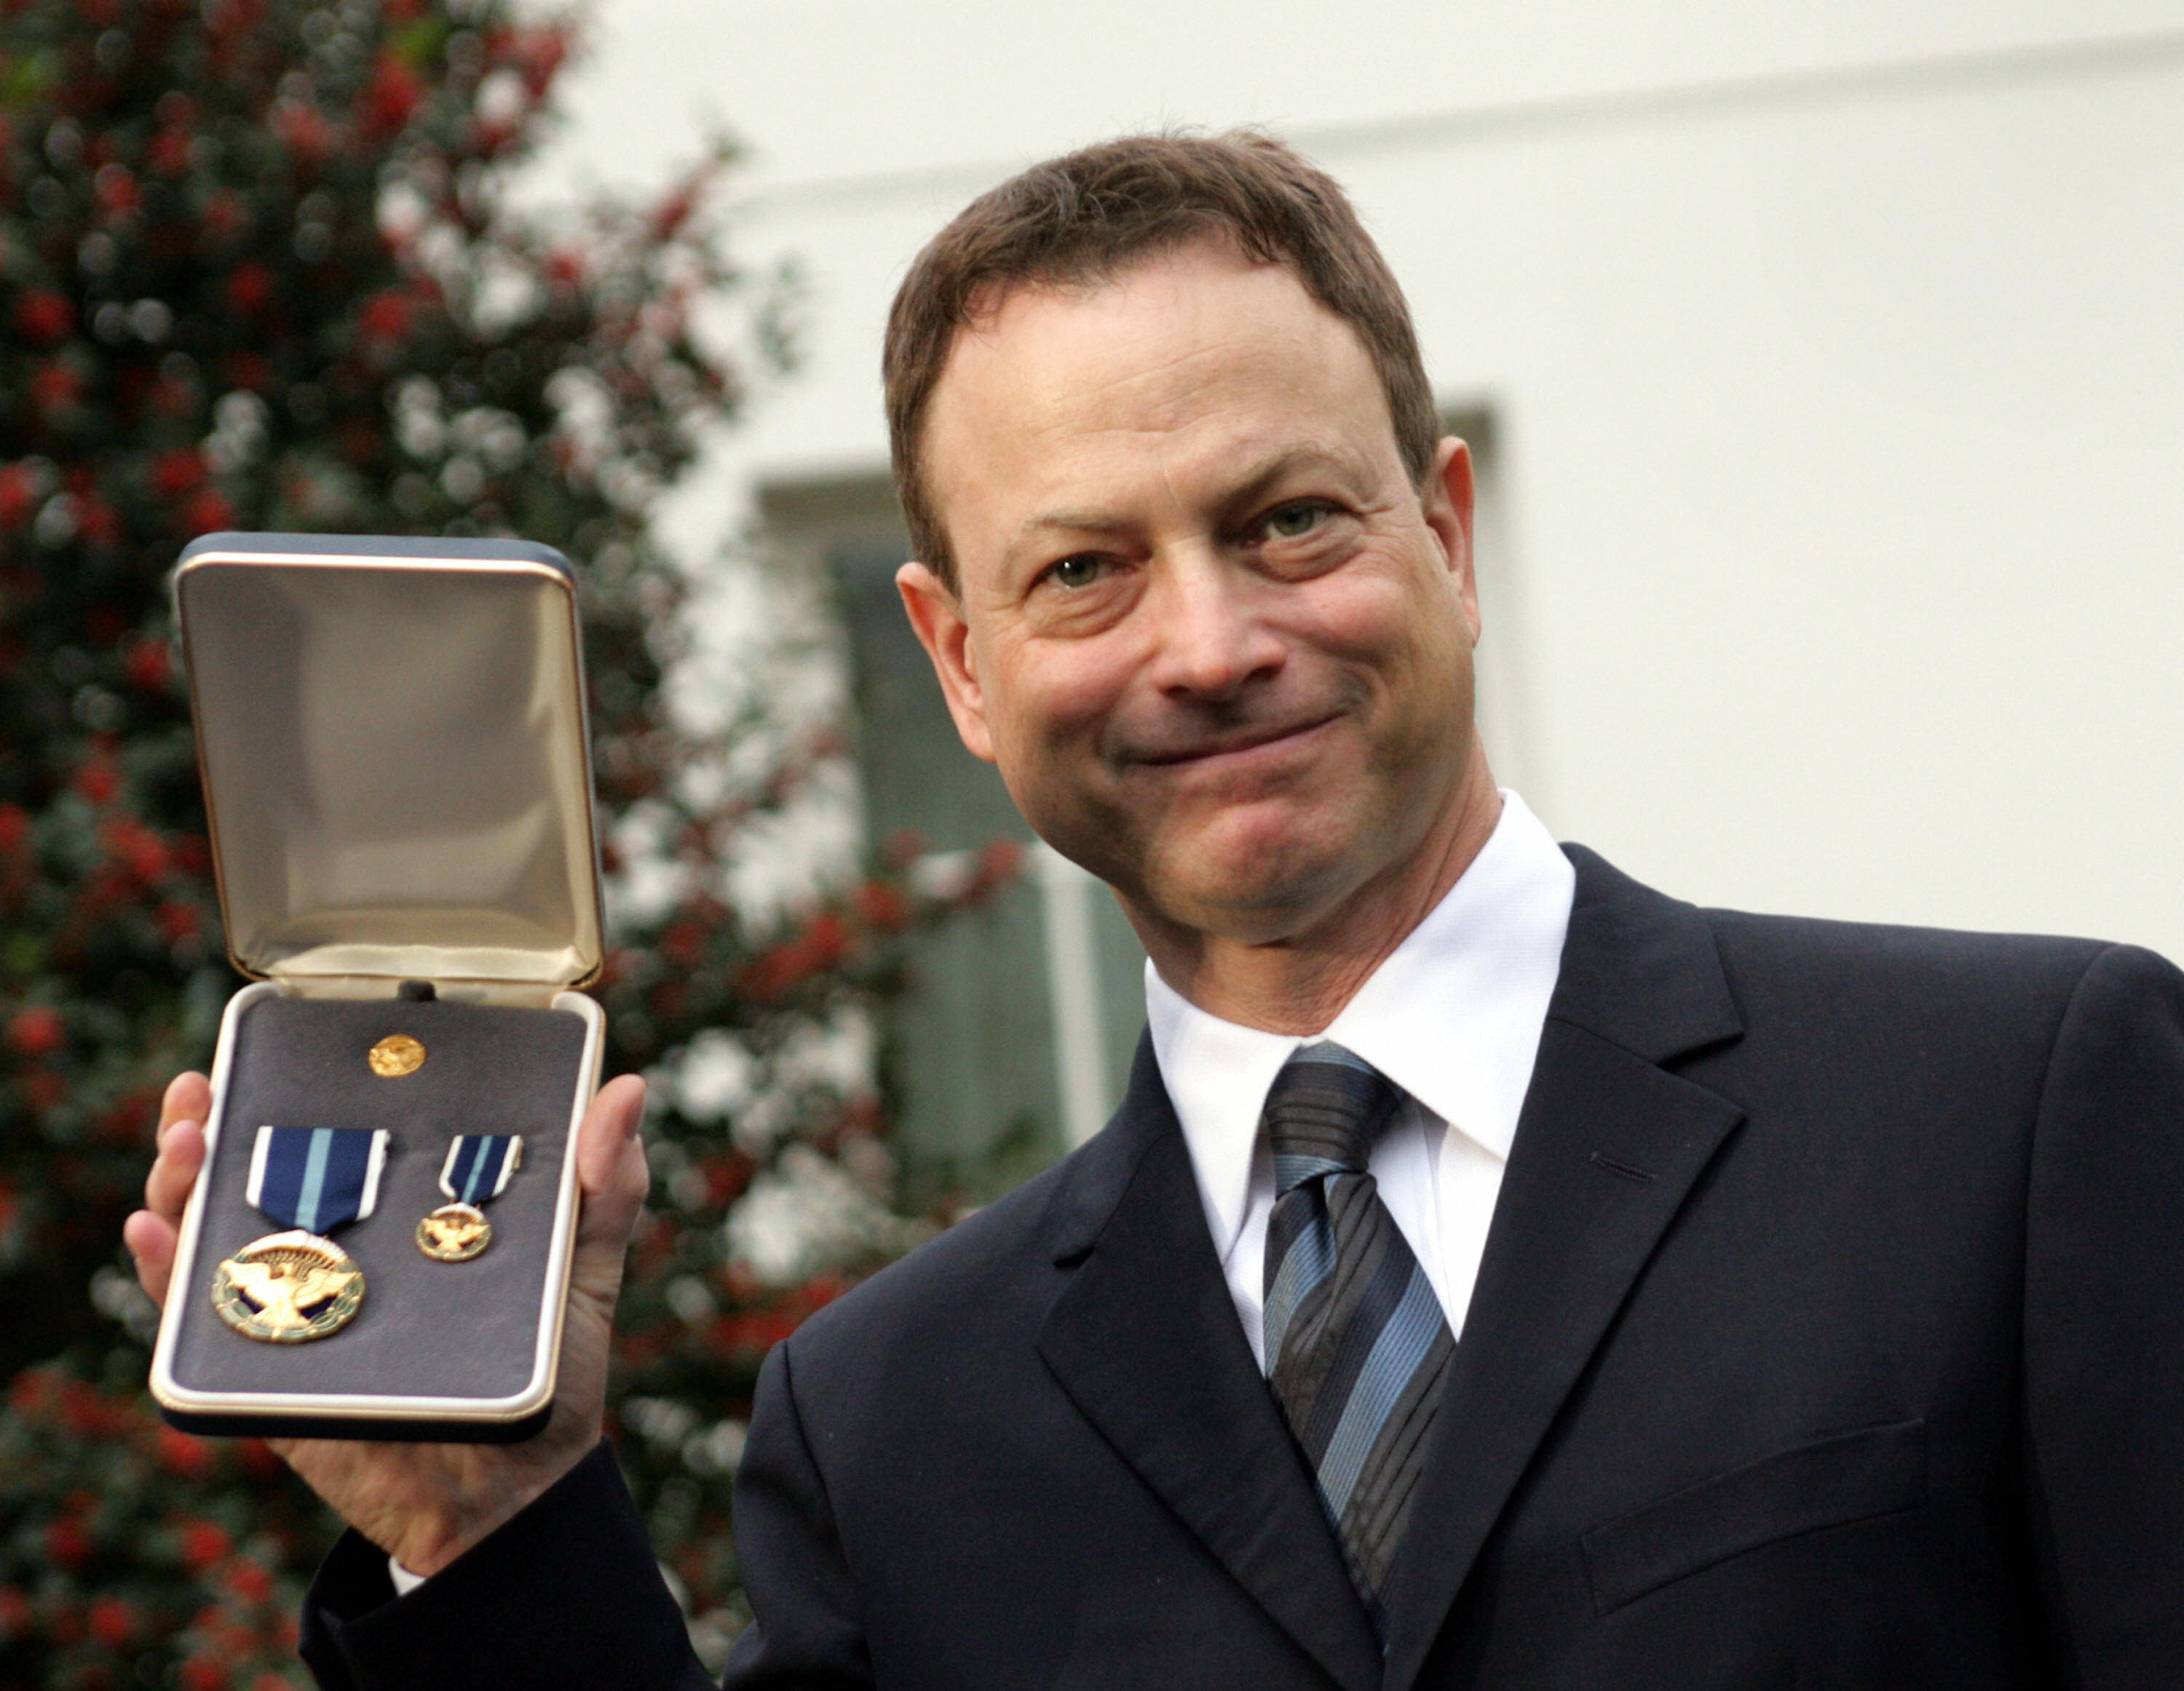 Actor Gary Sinise shows his Presidential Citizens Medal outside the White House in Washington, DC after receiving the medal from US President George W. Bush for his work supporting American soldiers on December 10, 2008.